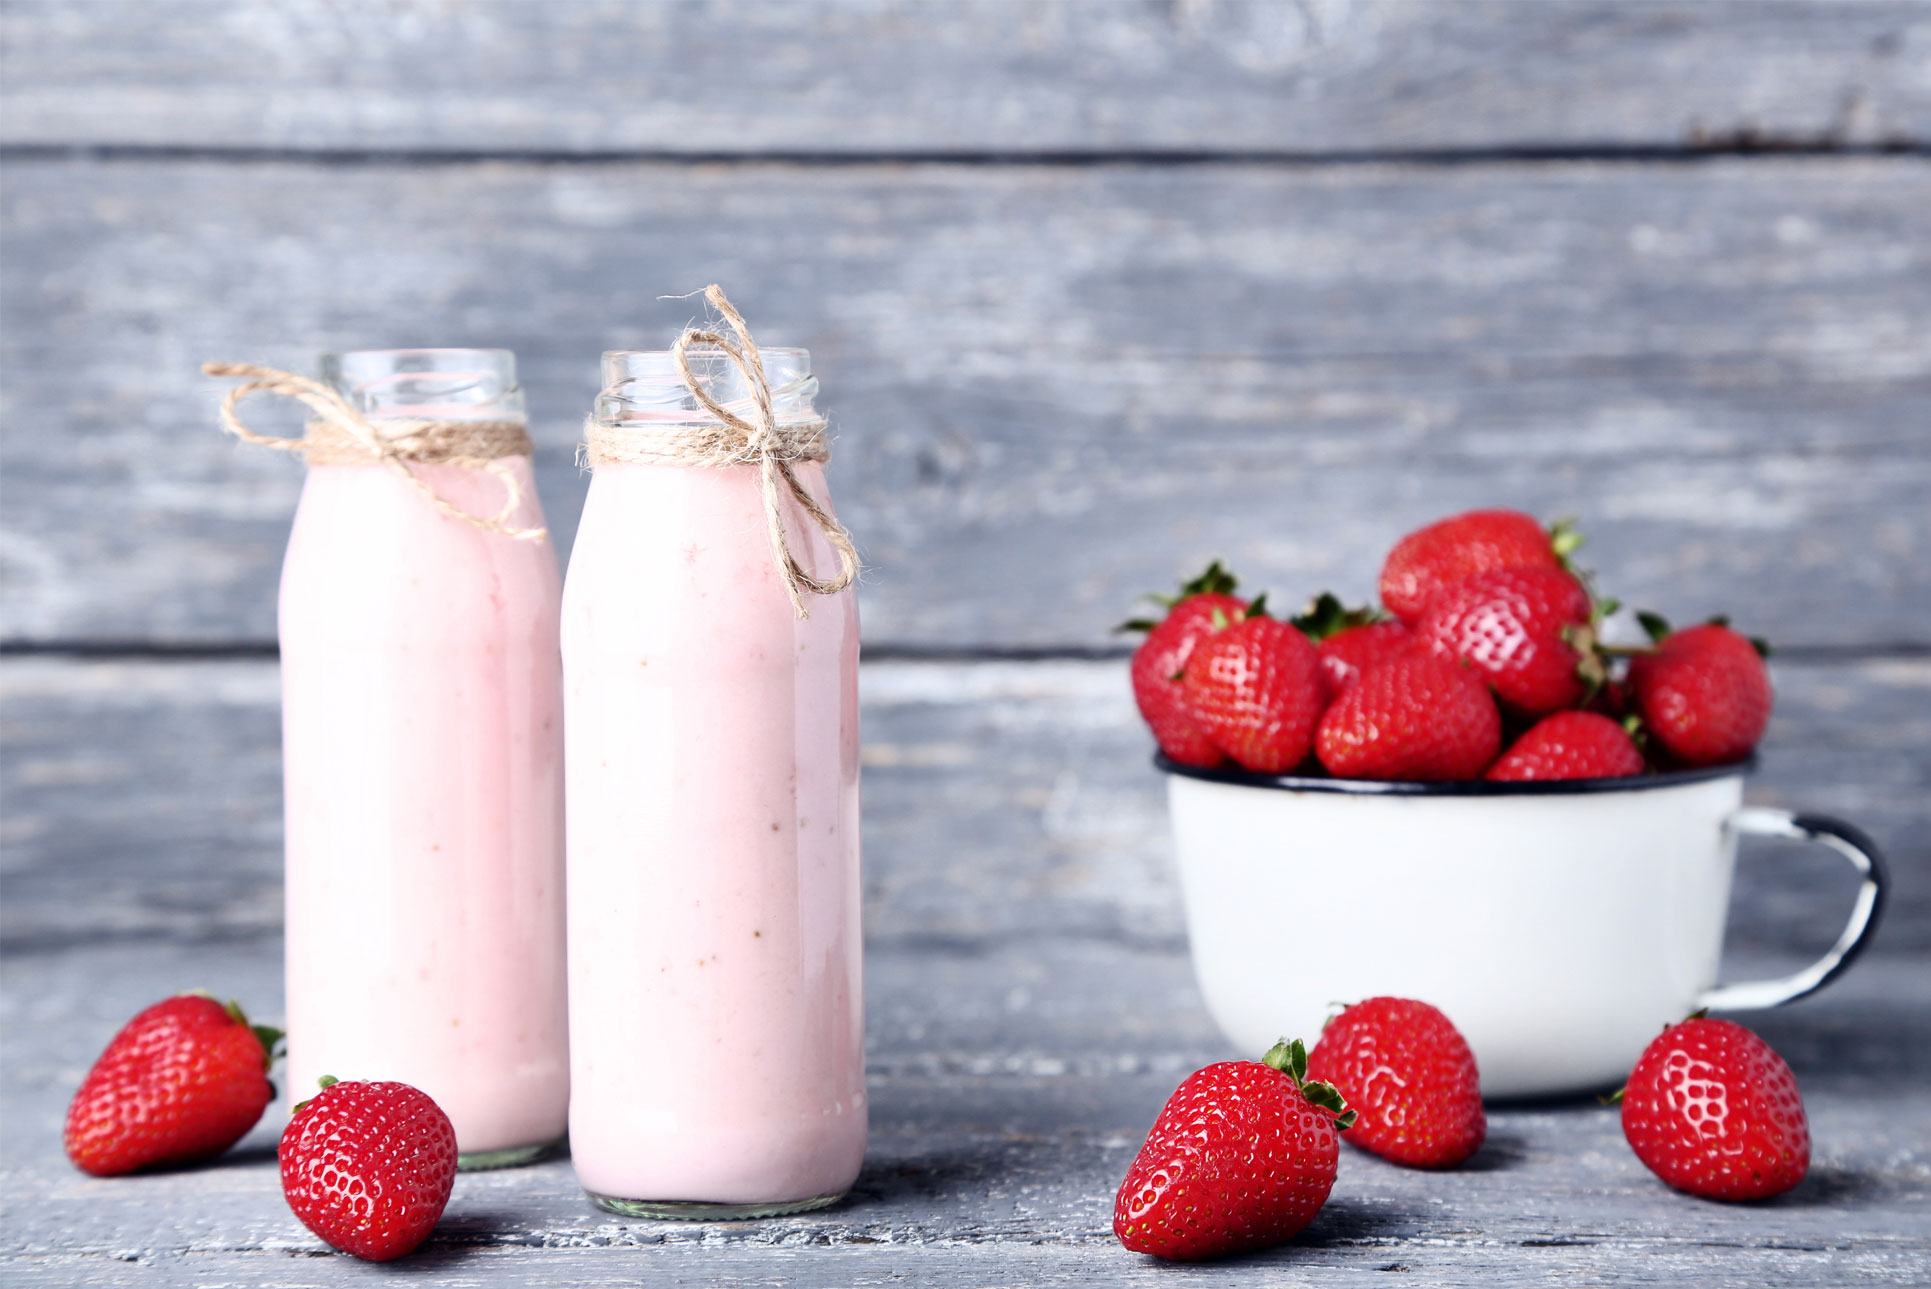 strawberry-milkshake.jpg